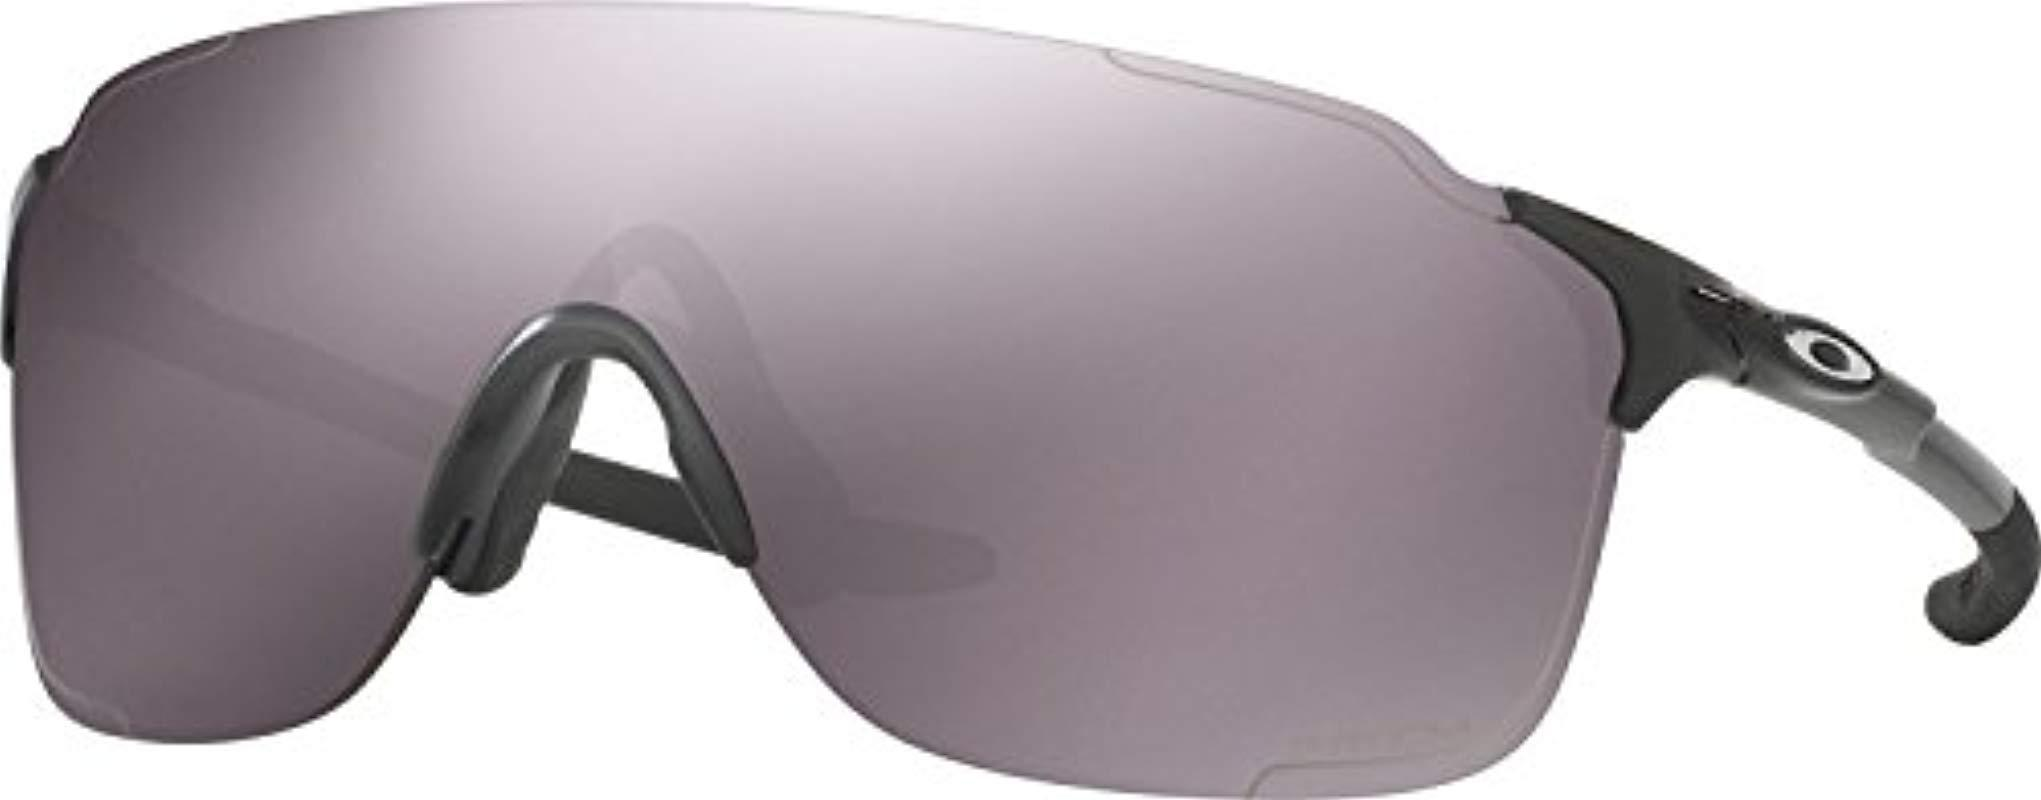 20a40934216c3 Lyst - Oakley Oo9386 38 Evzero Stride Black black Sunglasses 38mm in ...